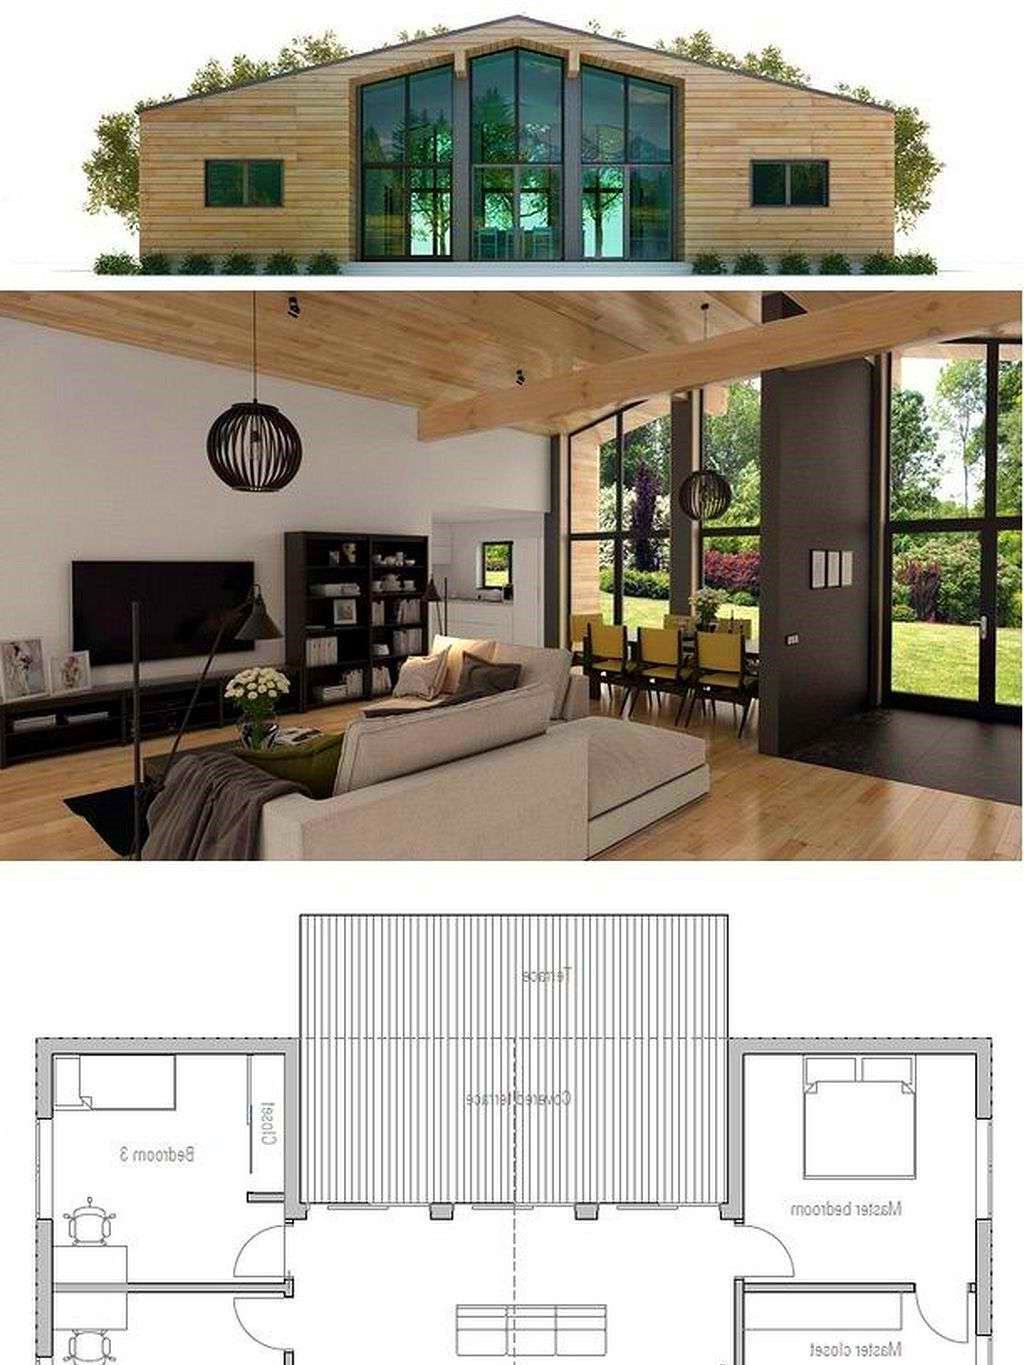 Photo of Shipping container house design and off the grid shipping container home designs.